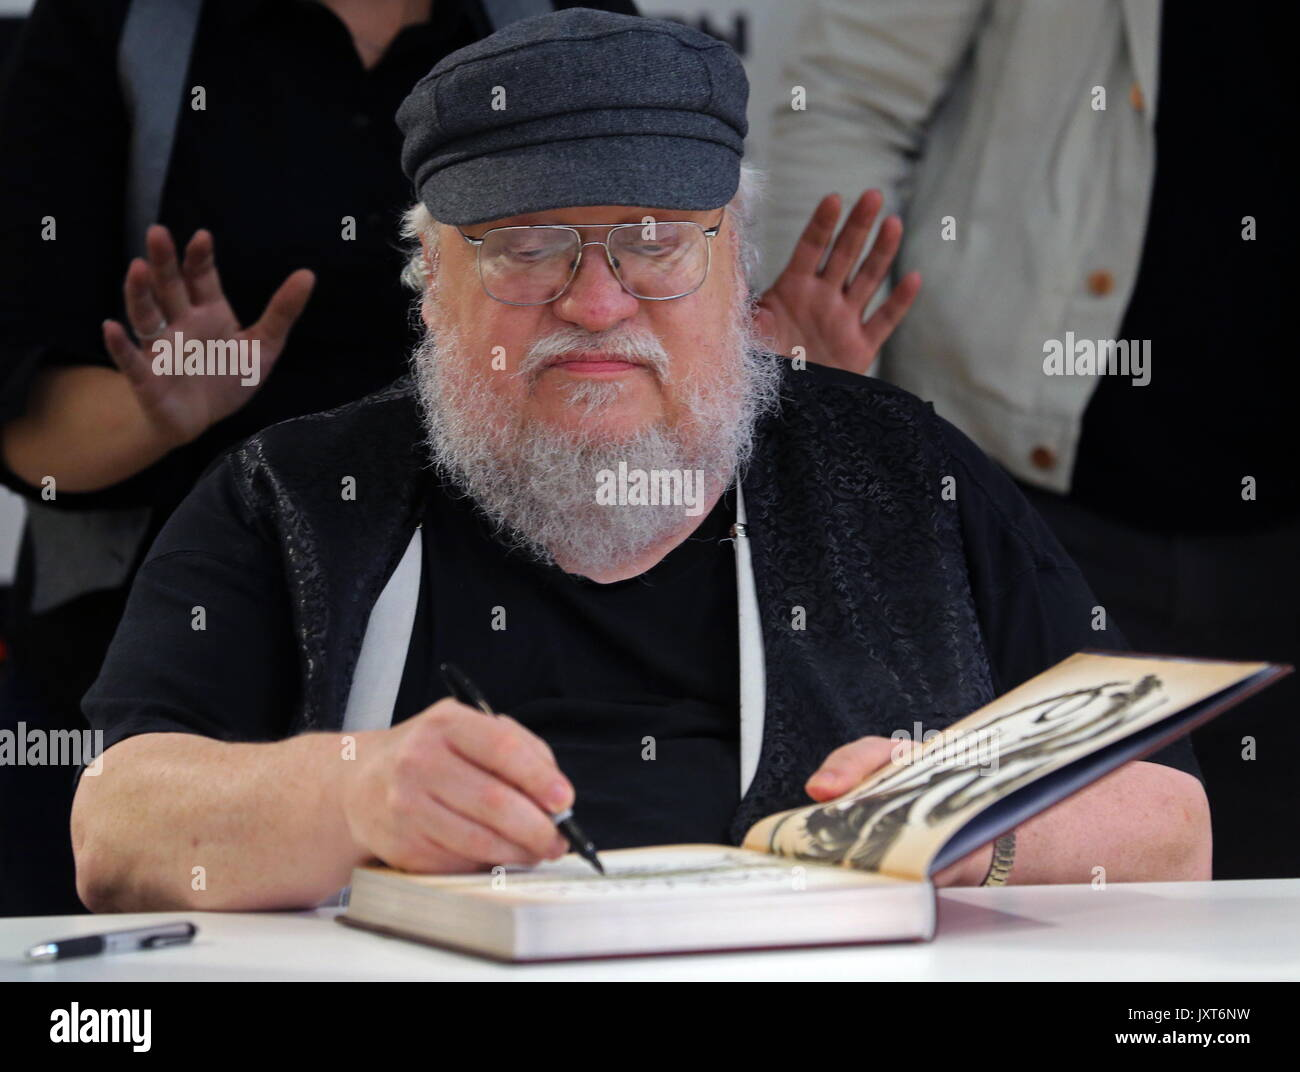 St Petersburg, Russia  17th Aug, 2017  George R R  Martin